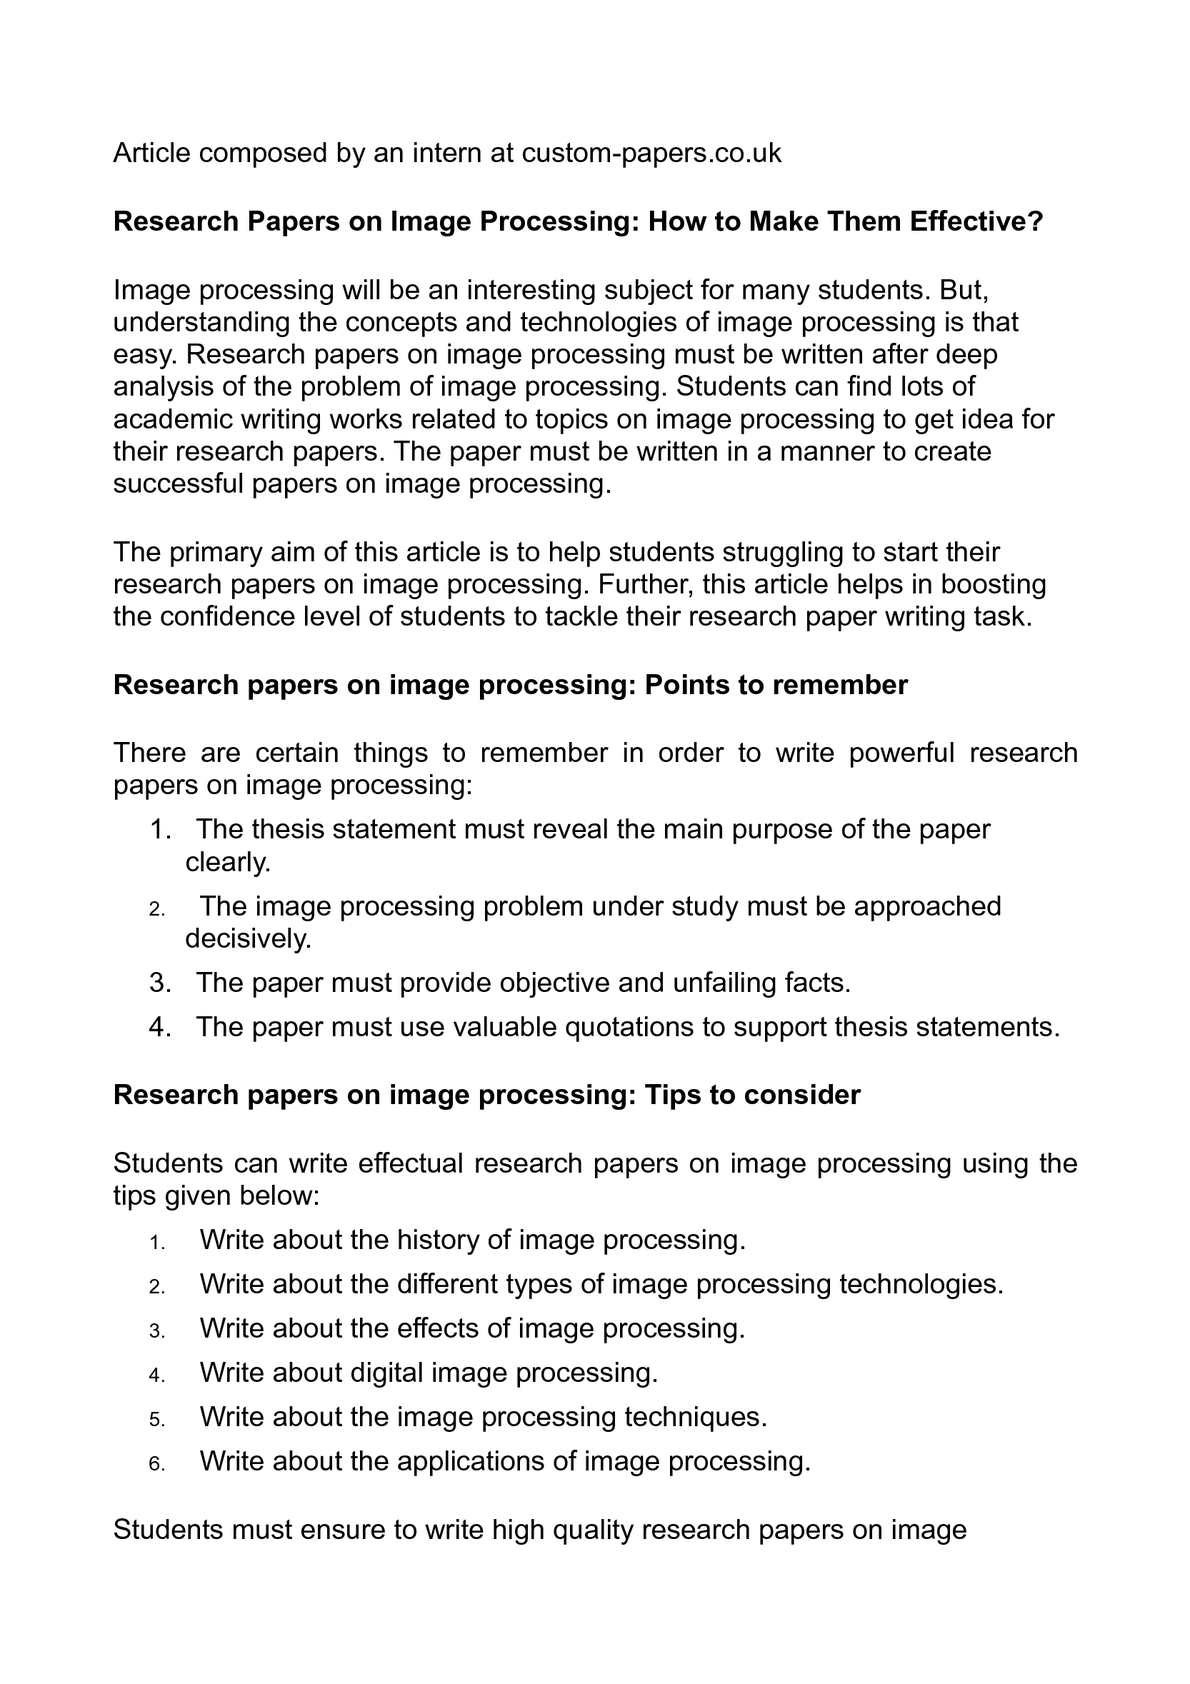 image processing research papers 2017